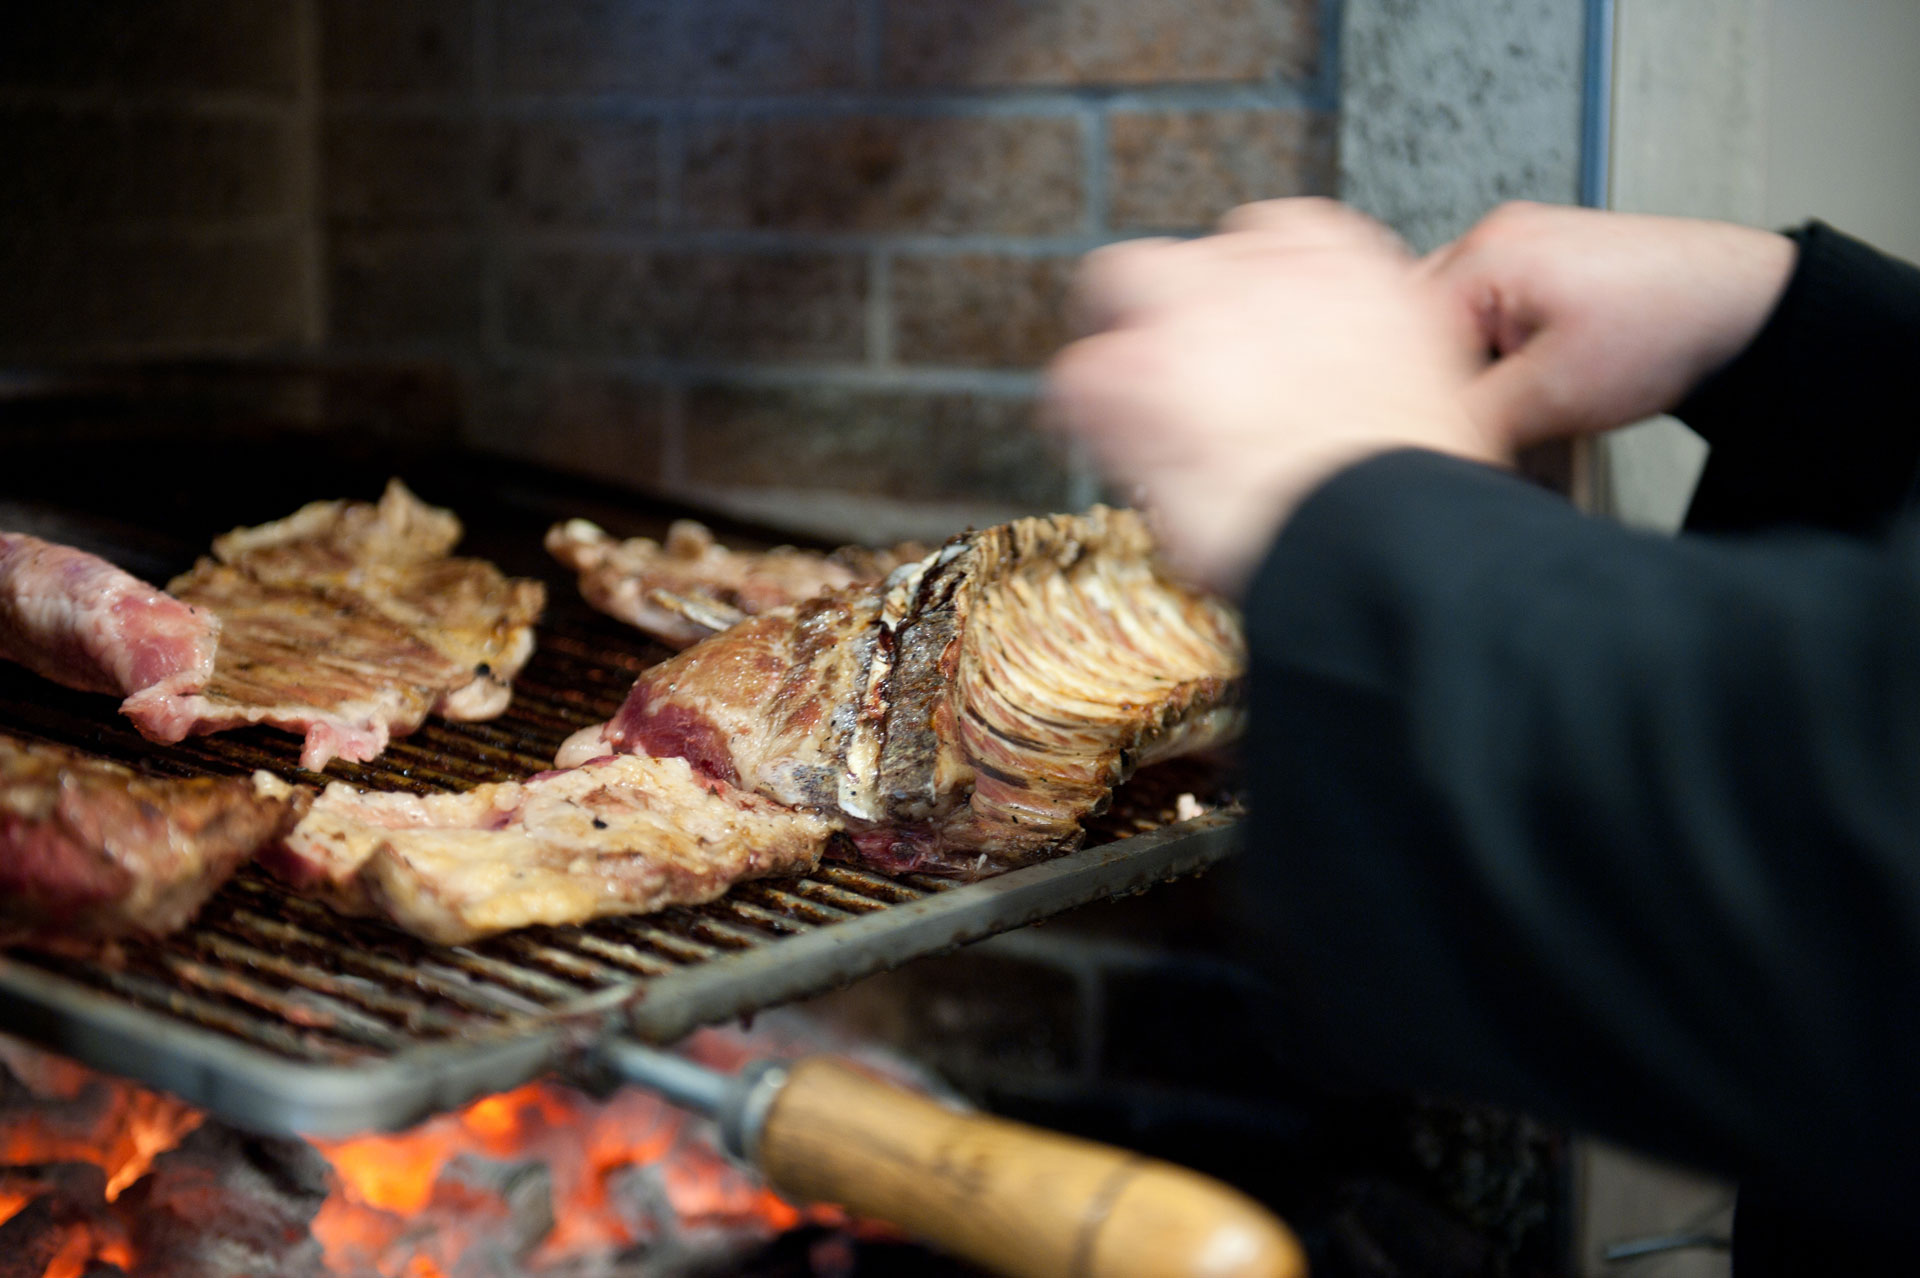 grilled meats in catalonia